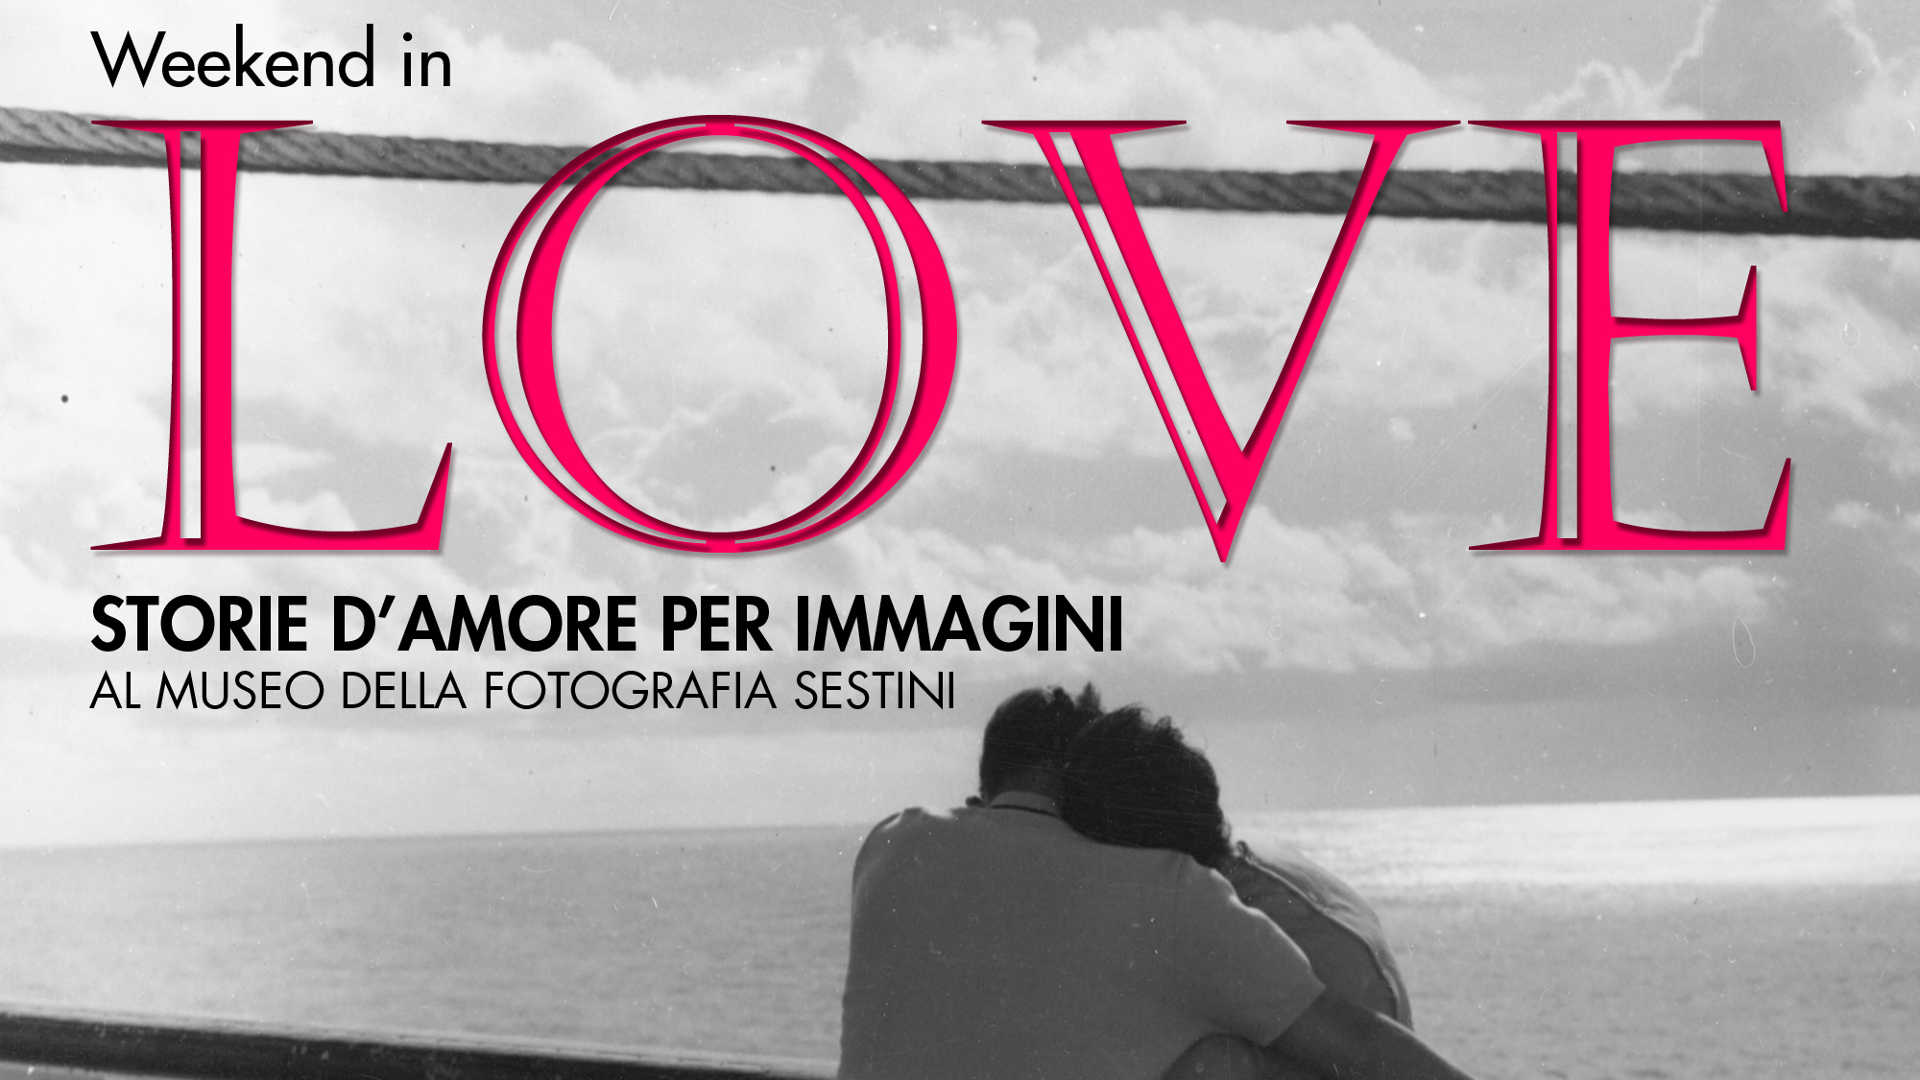 Weekend in LOVE. Storie d'amore per immagini